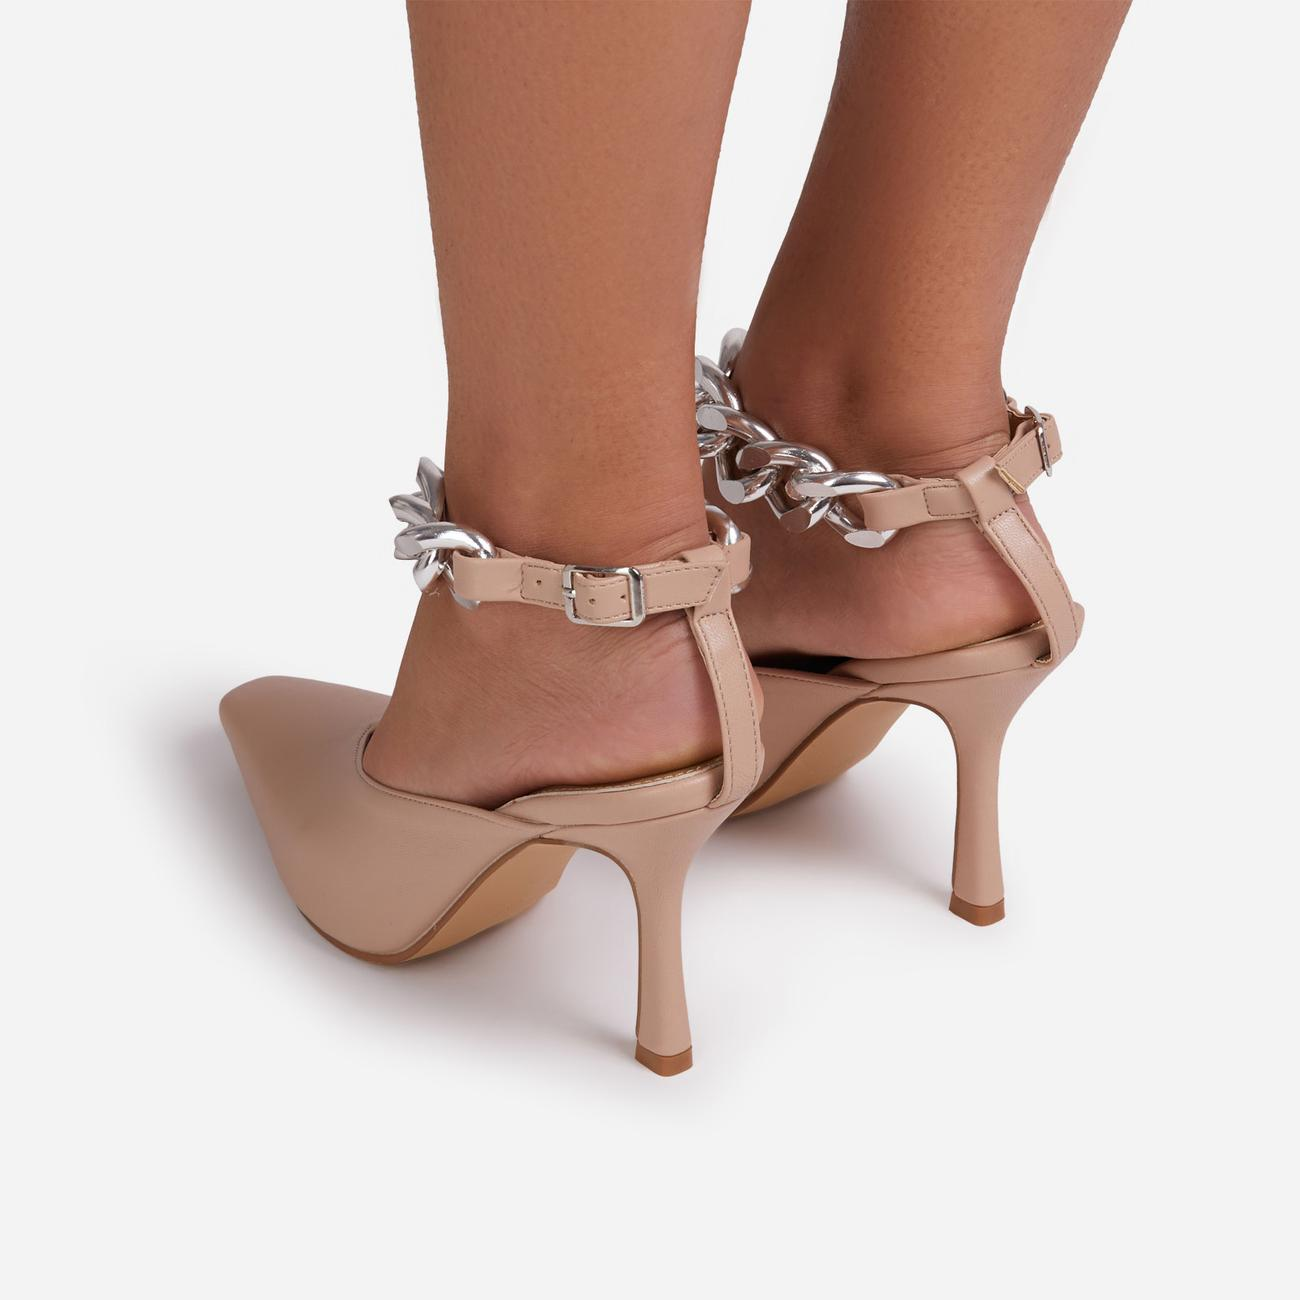 Antidote Chain Detail Ankle Strap Pointed Toe Heel In Nude